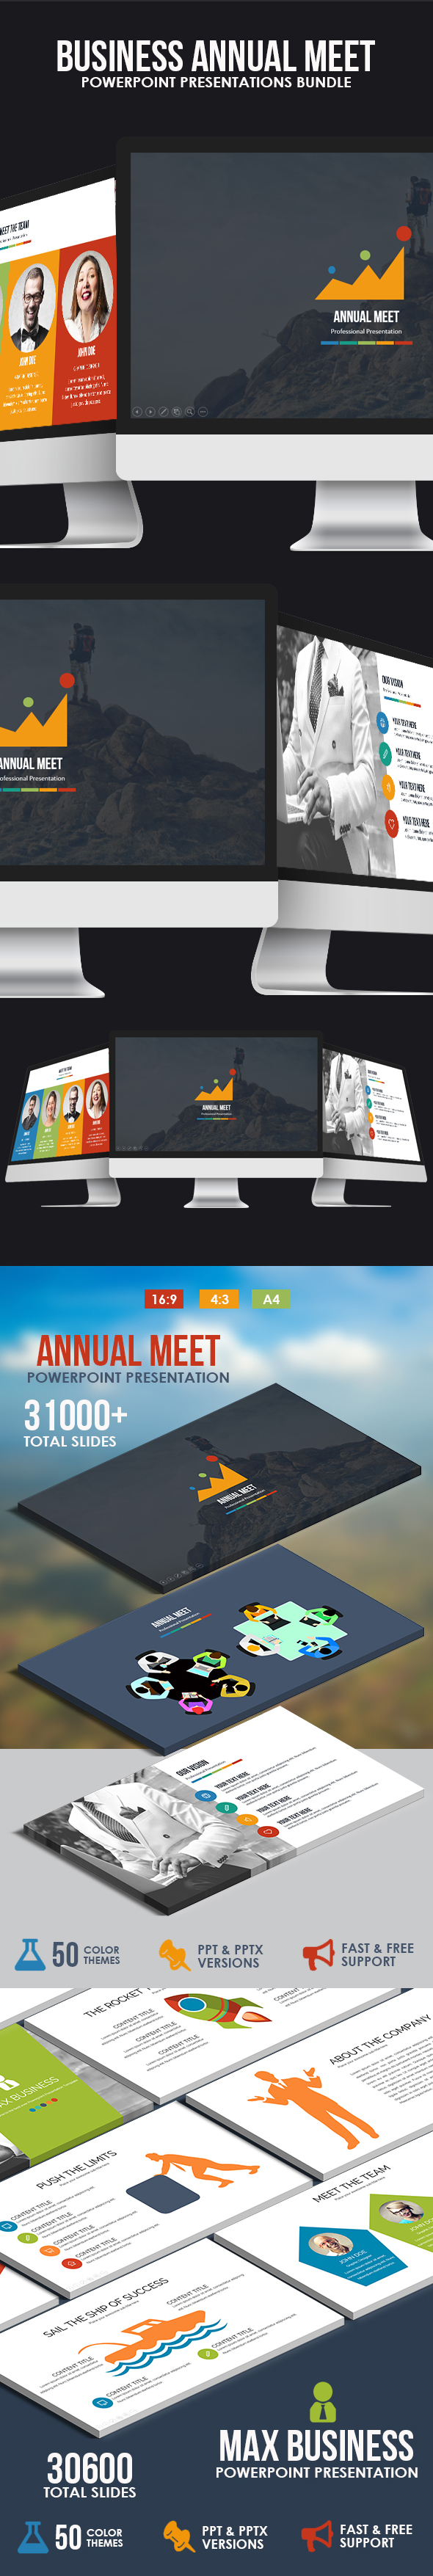 GraphicRiver Business Annual Meet Powerpoint Template Bundle 21033703